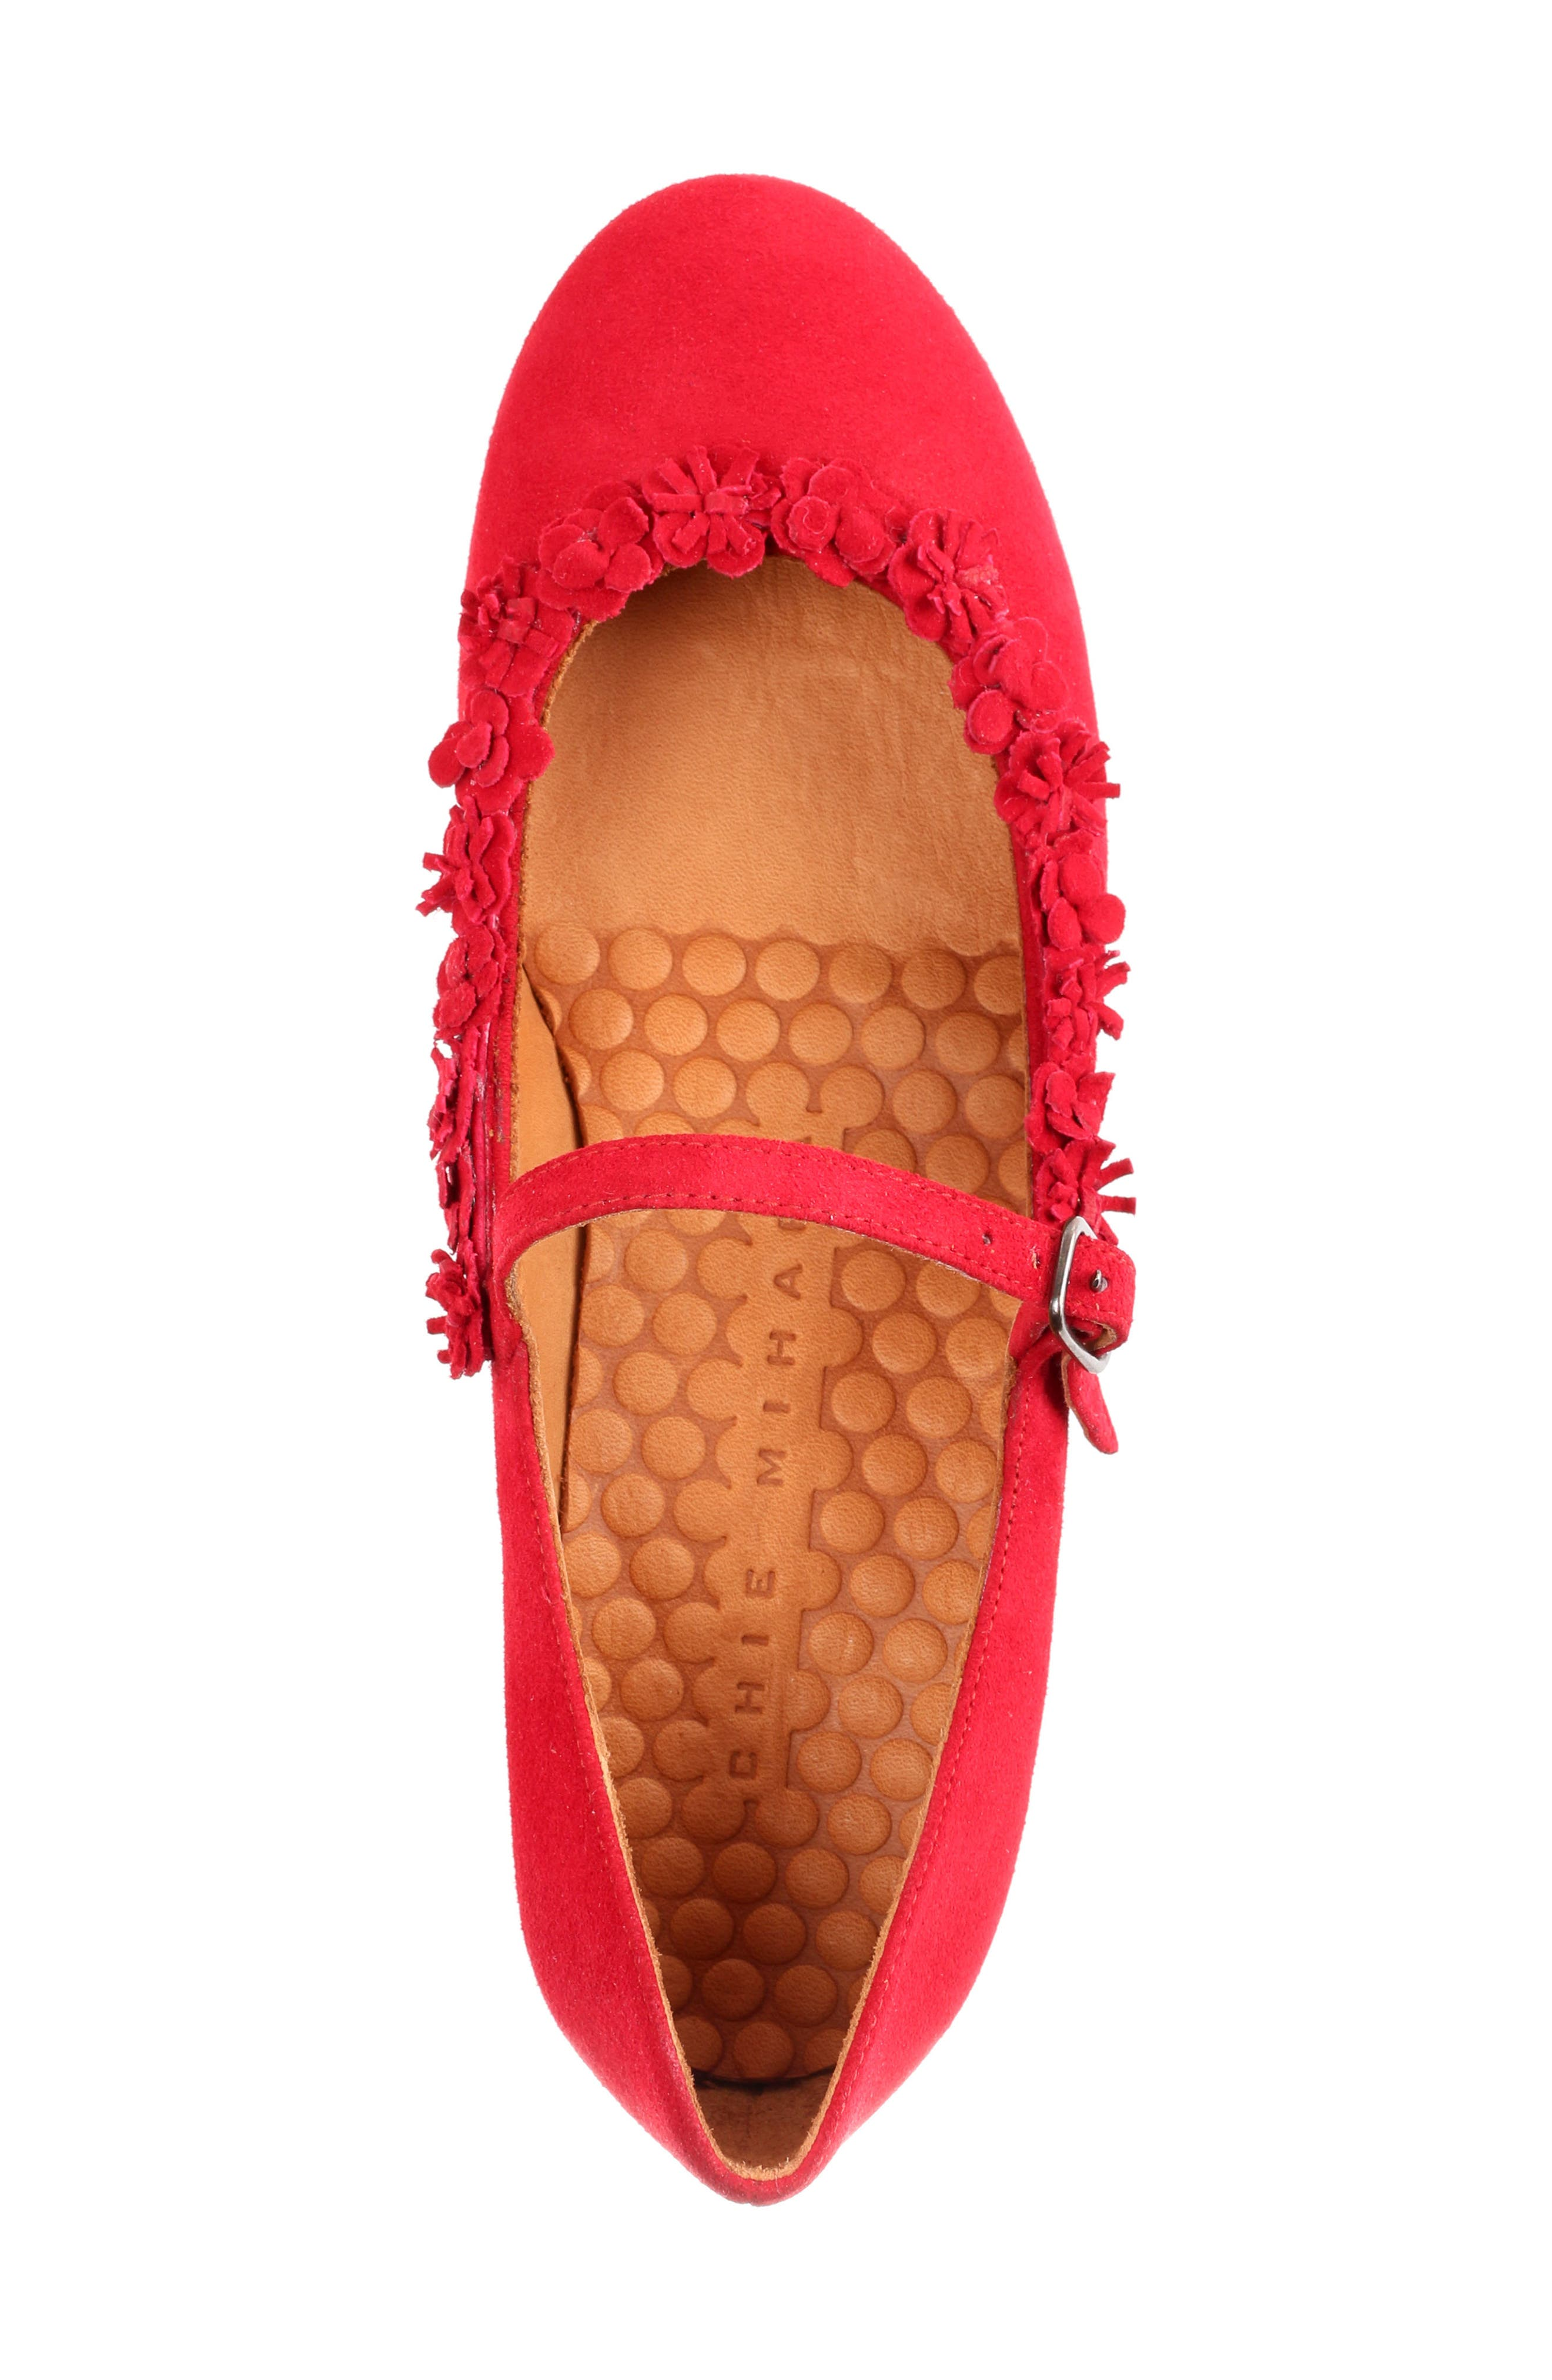 Rizo Mary Jane Flat,                             Alternate thumbnail 5, color,                             Red